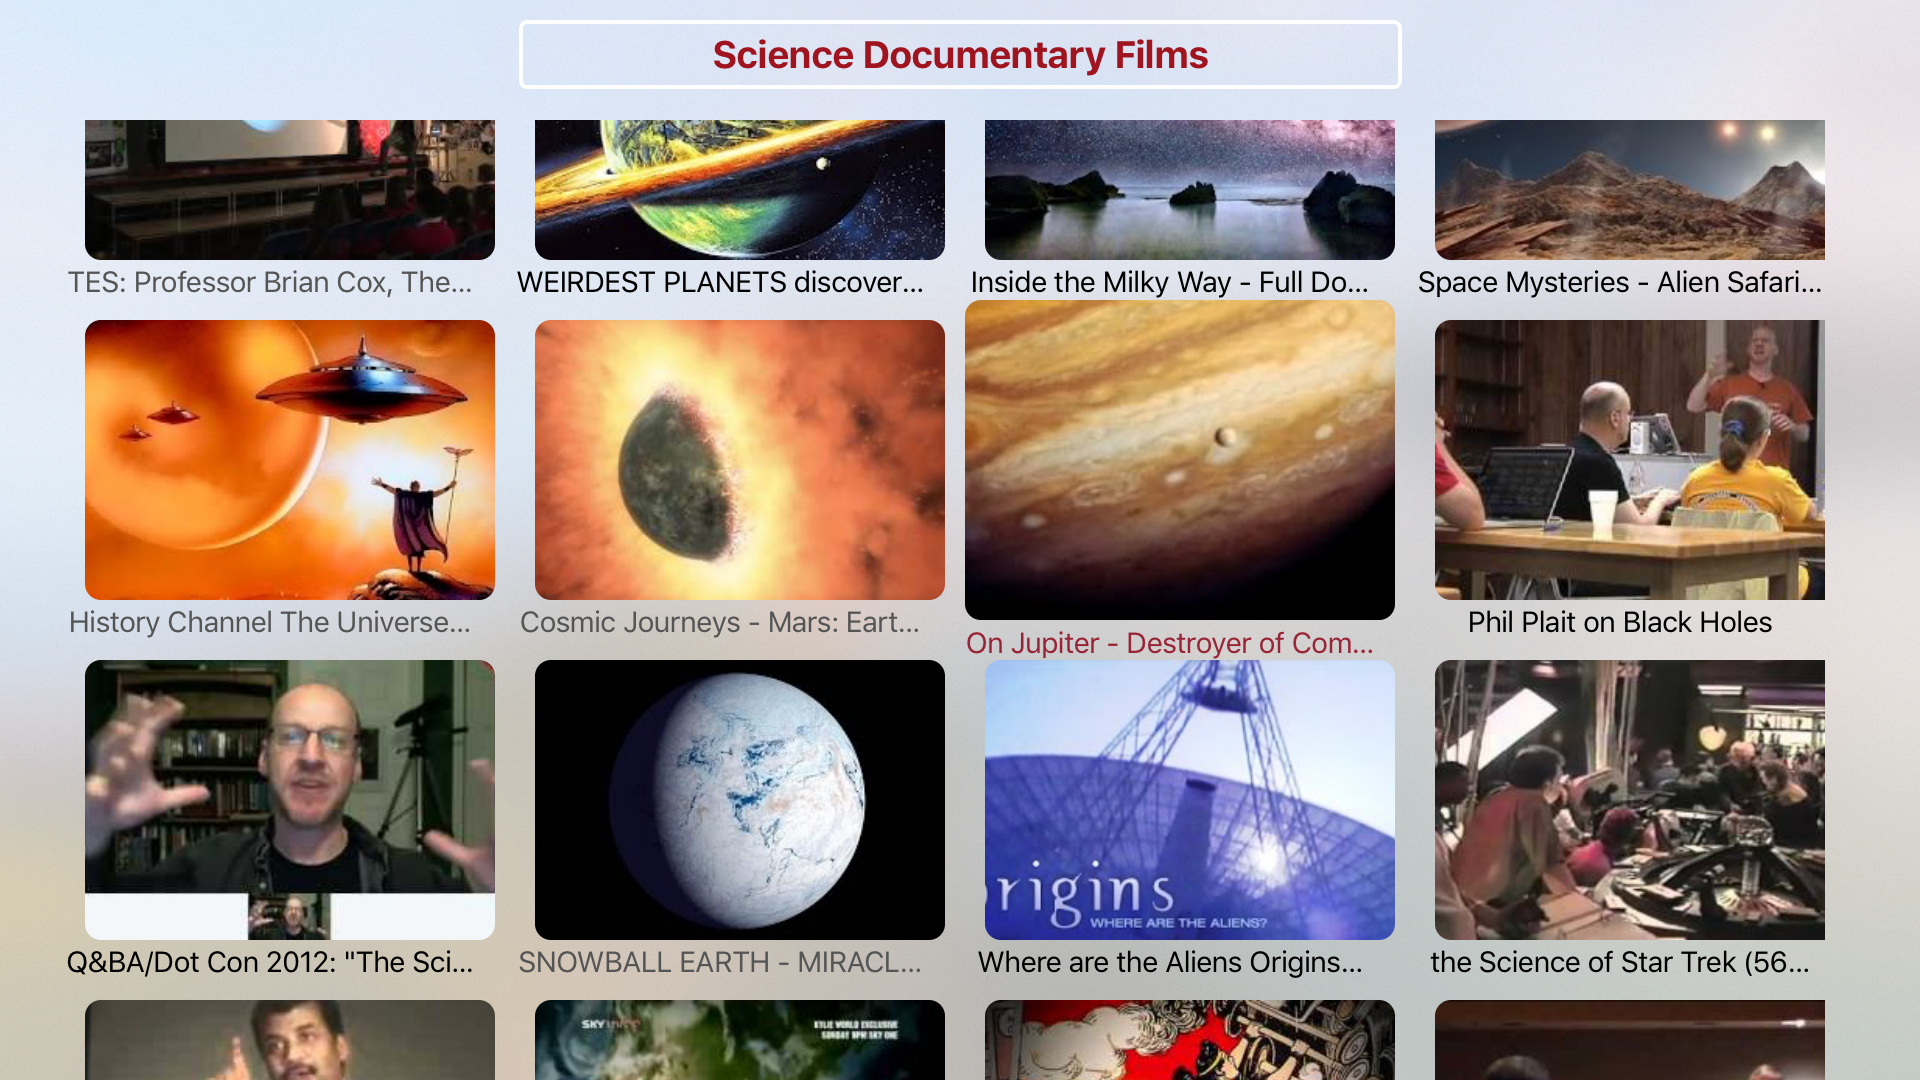 Science Documentary Films - HD Collection screenshot 1